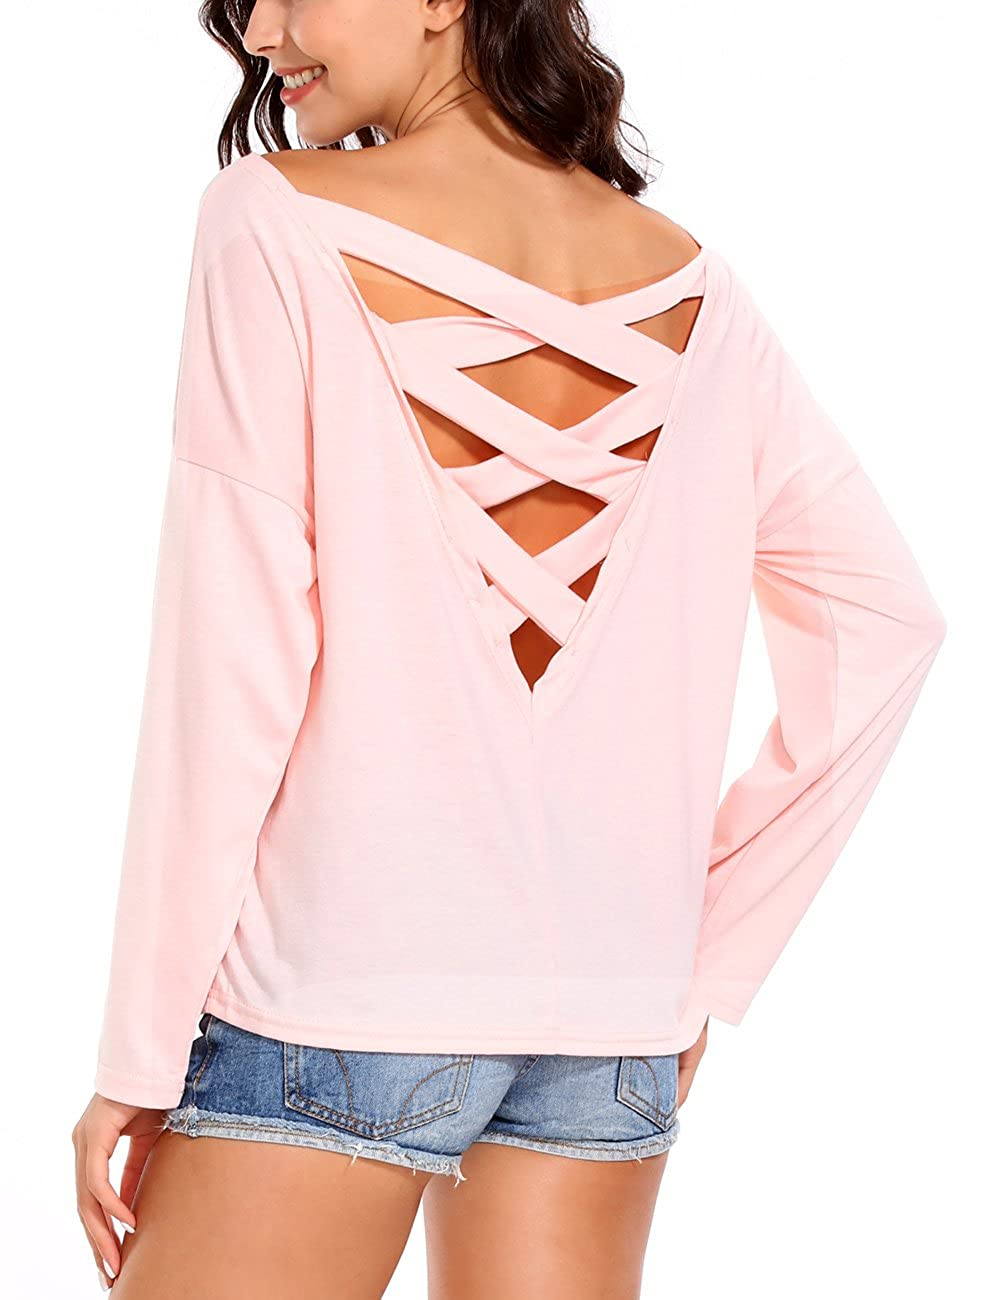 ISASSY Women's Cut Out Loose Pullover Deep V Back Criss Cross Top Tee Blouse